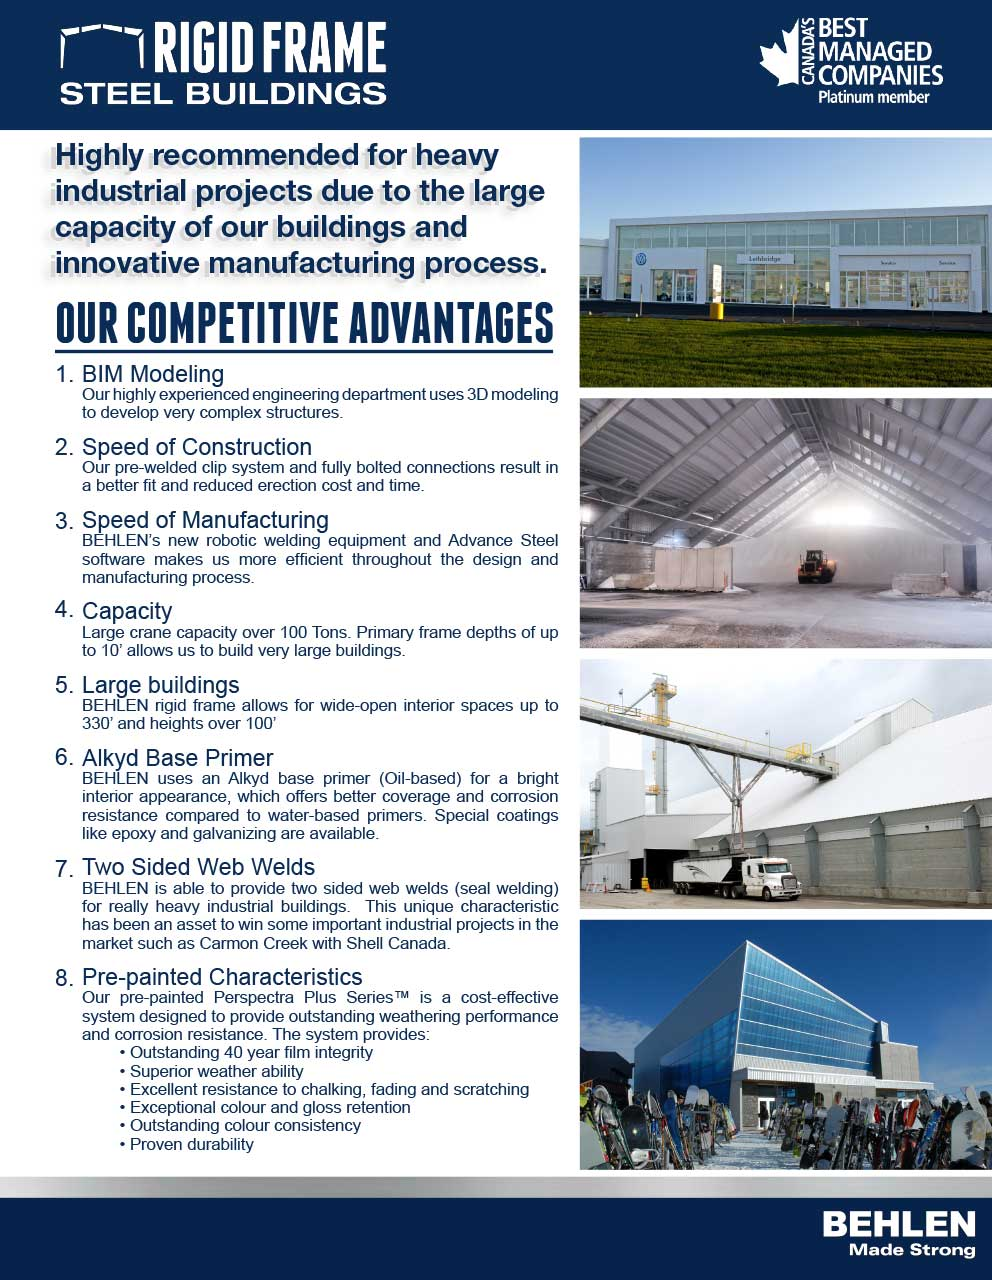 Behlen Industries - Rigid Frame Competitive Advantages